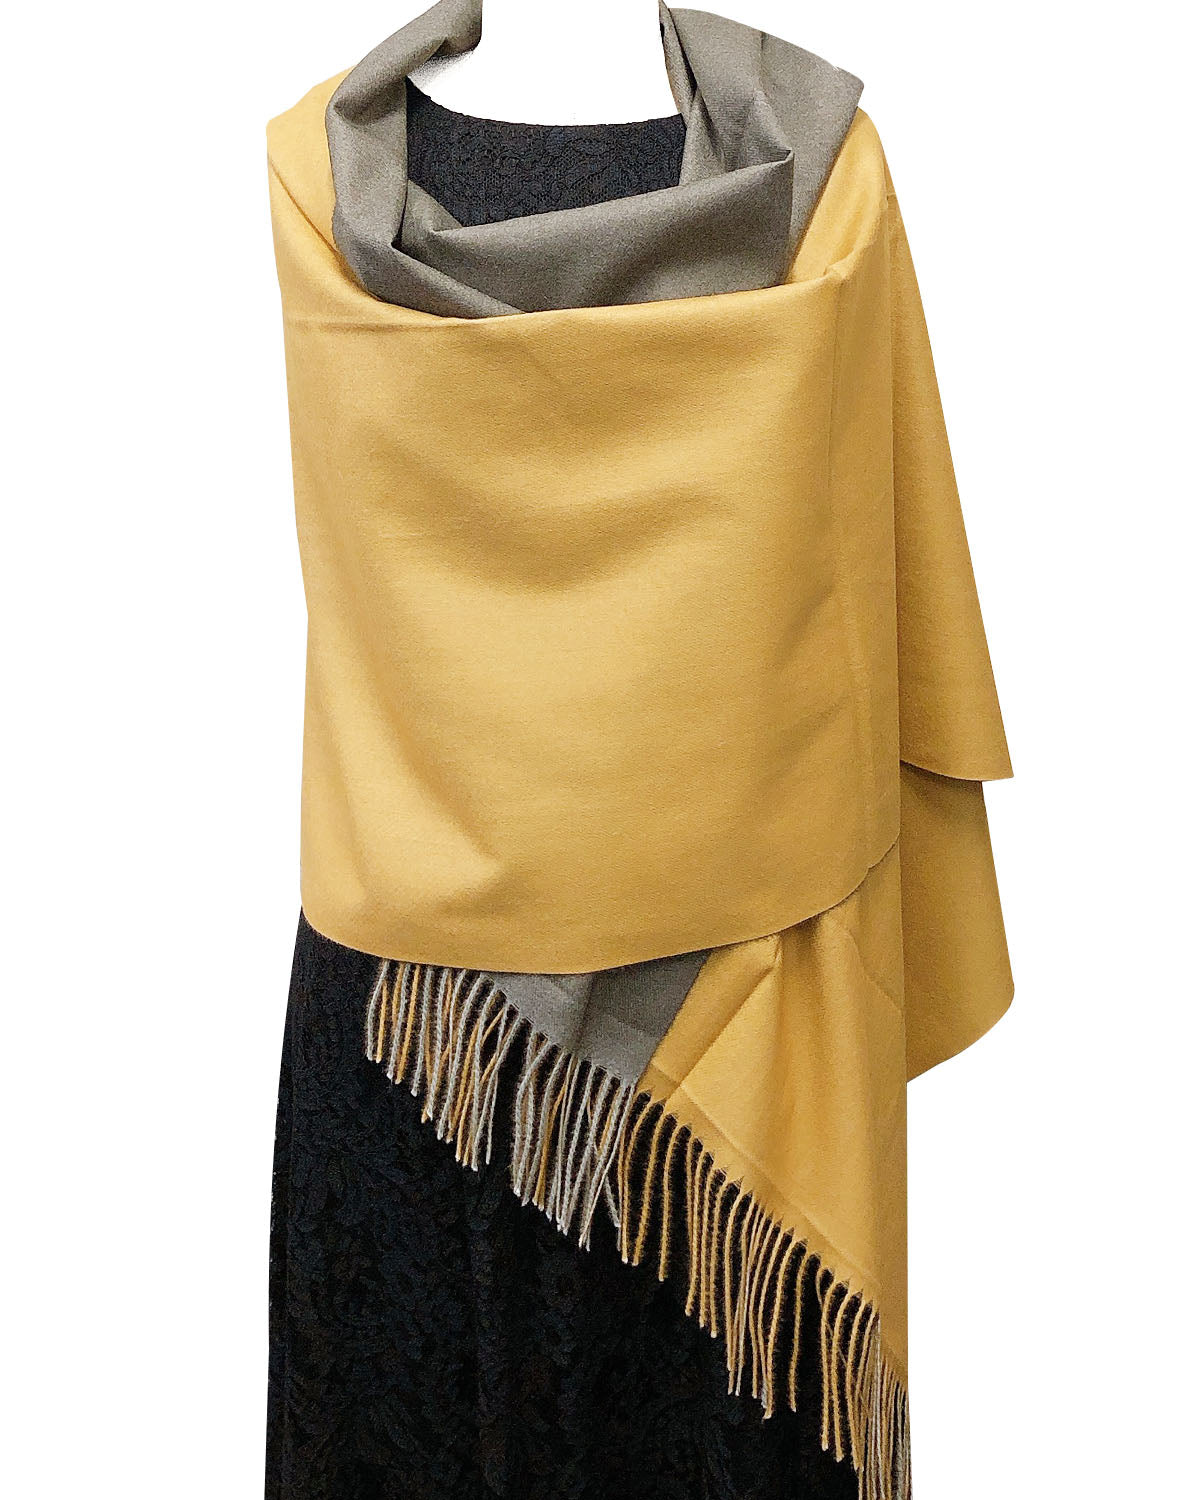 Wrapables Soft Cashmere-Feeling Lightweight Scarf, Large Two-Tone Warm Scarf Wrap Shawl for Winter